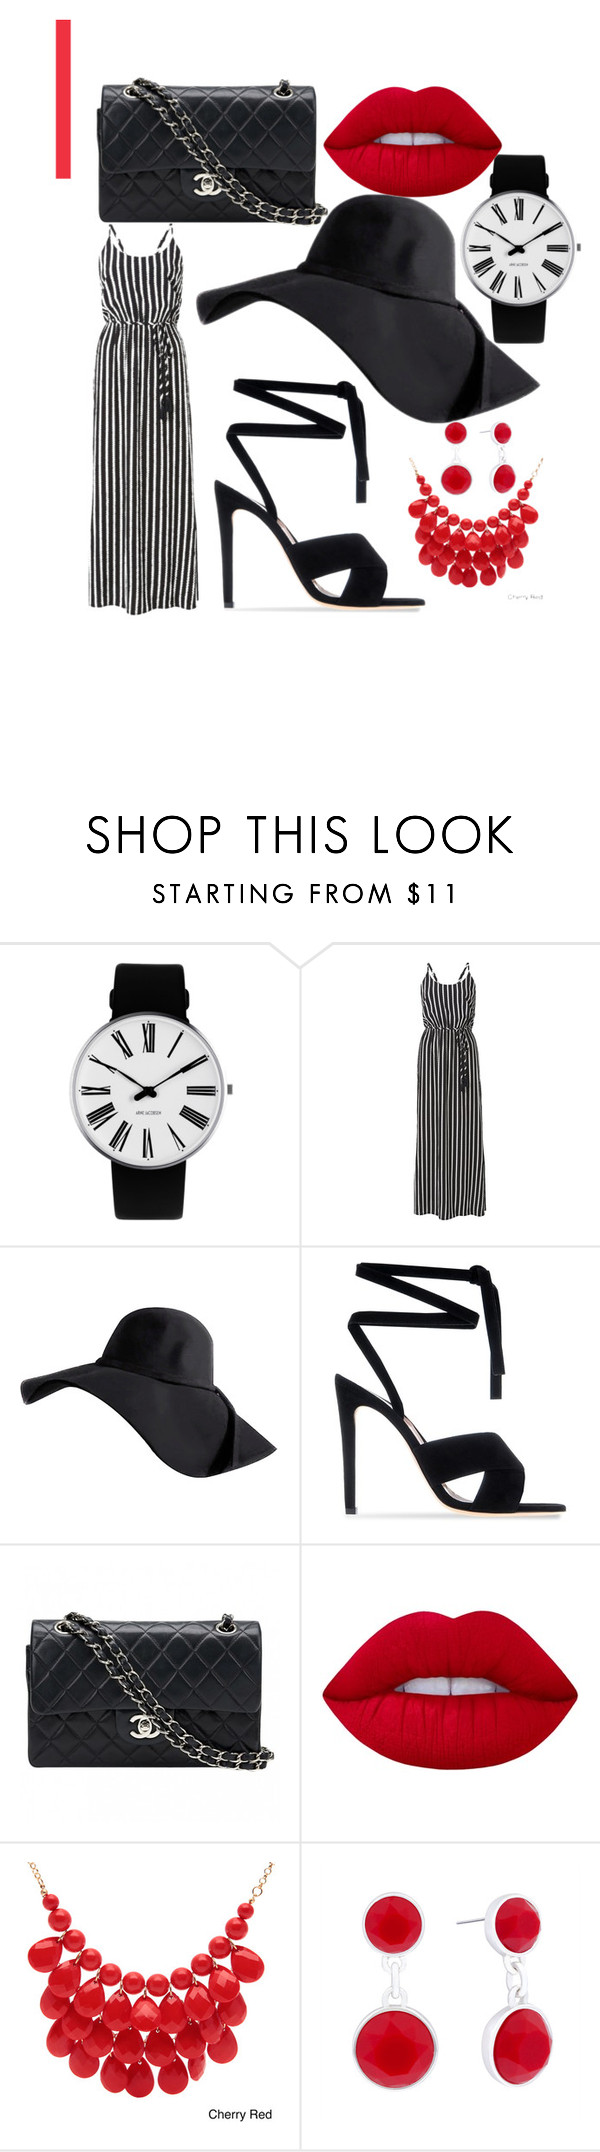 """""""Untitled #24"""" by ellenclx ❤ liked on Polyvore featuring Rosendahl, Witchery, Gianvito Rossi, Chanel, Lime Crime, Alexa Starr and Liz Claiborne"""